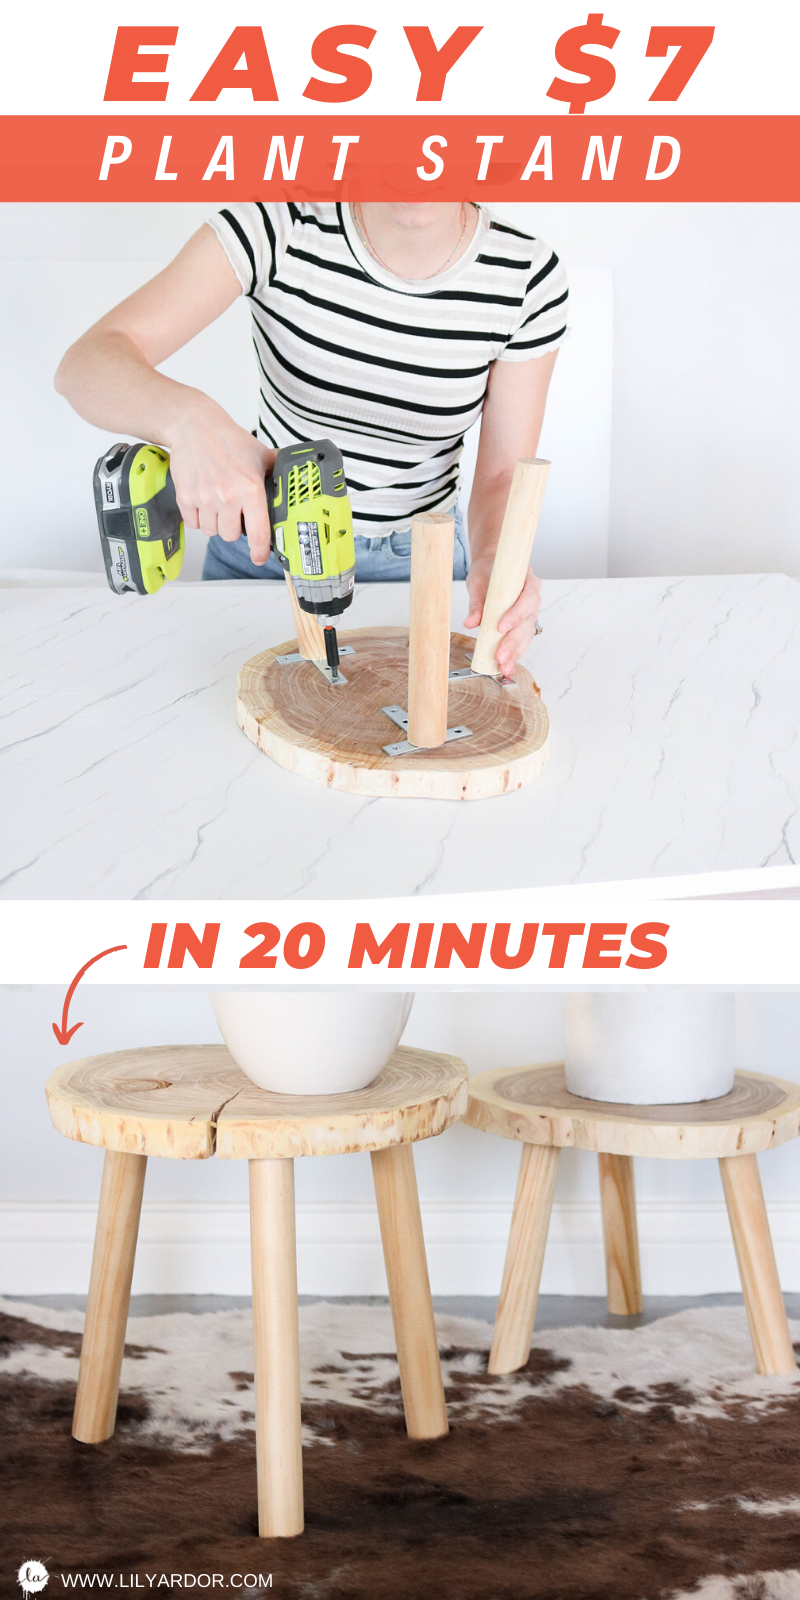 PLANT STANDS THAT ONLY TAKE 20 MINUTES TO MAKE!